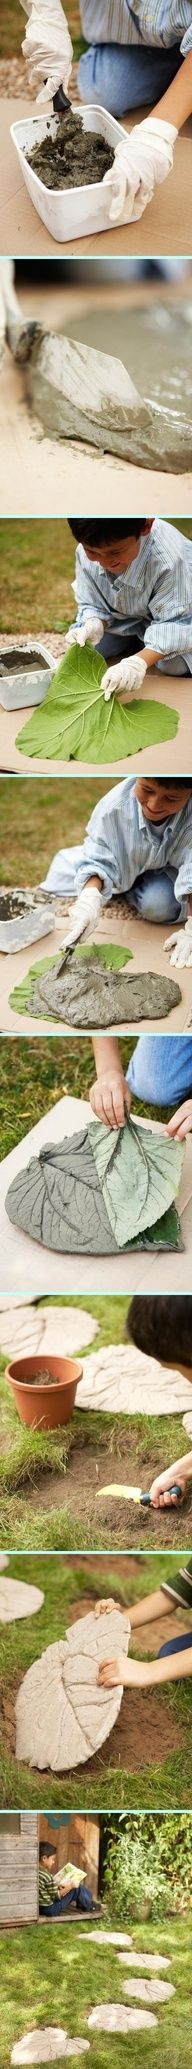 DIY: homemade cement leaves to use as stepping stones